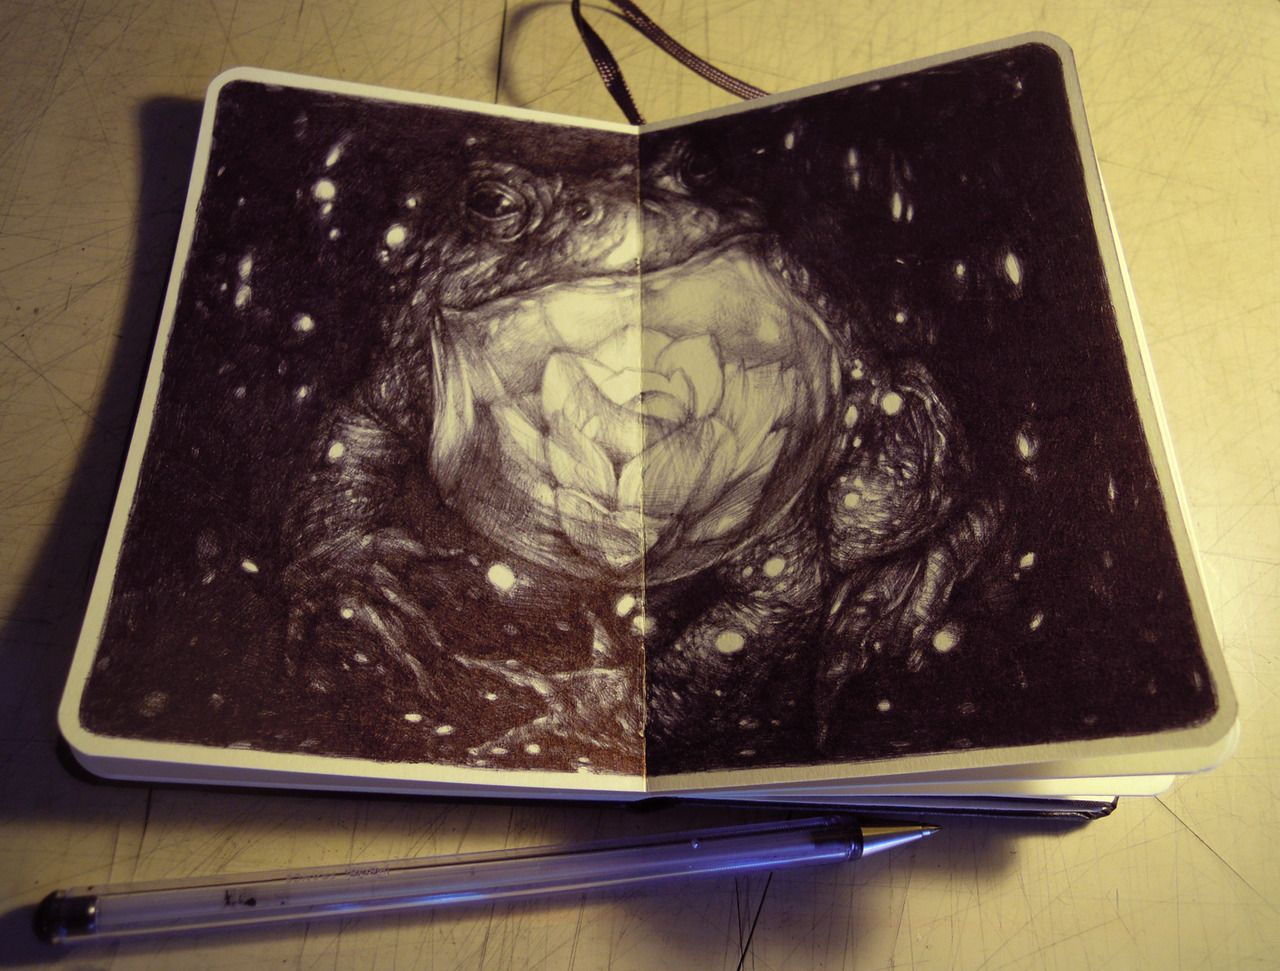 Marco Mazzoni - the lighthouse on moleskine (pen). Pin by www.povetx.de